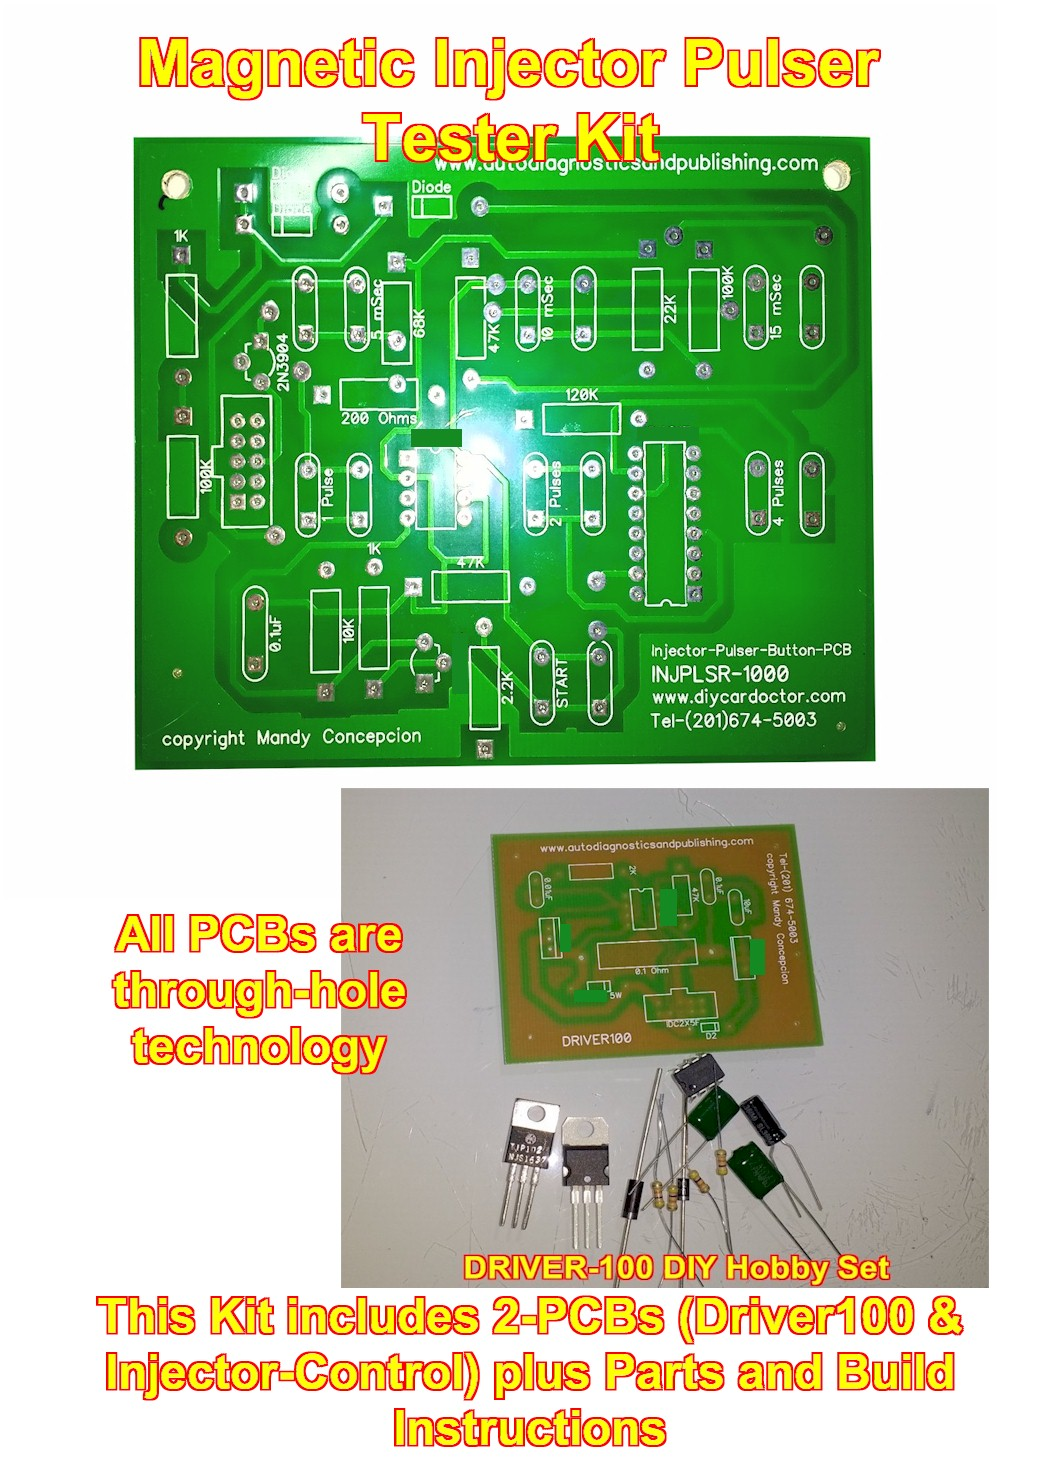 Injector Pulser Kit